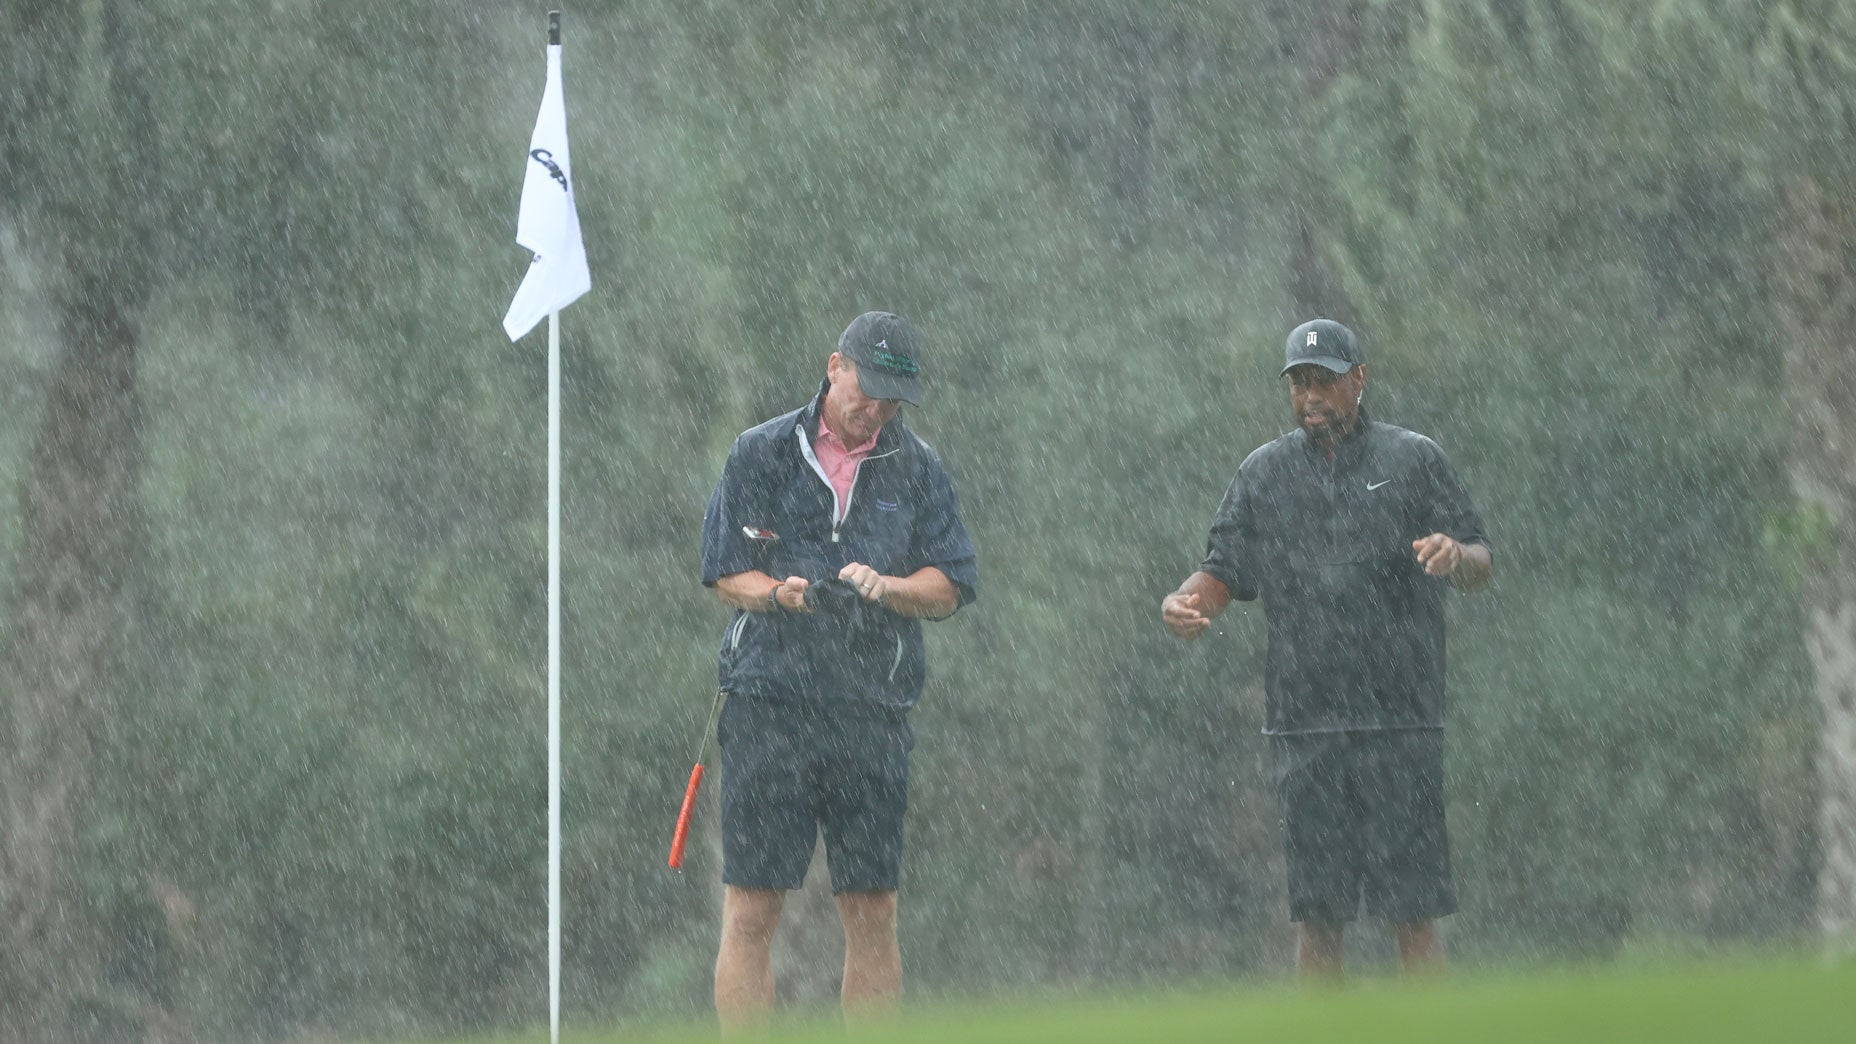 Peyton Manning and Tiger Woods battle the rain on the 13th green at Medalist Golf Club.